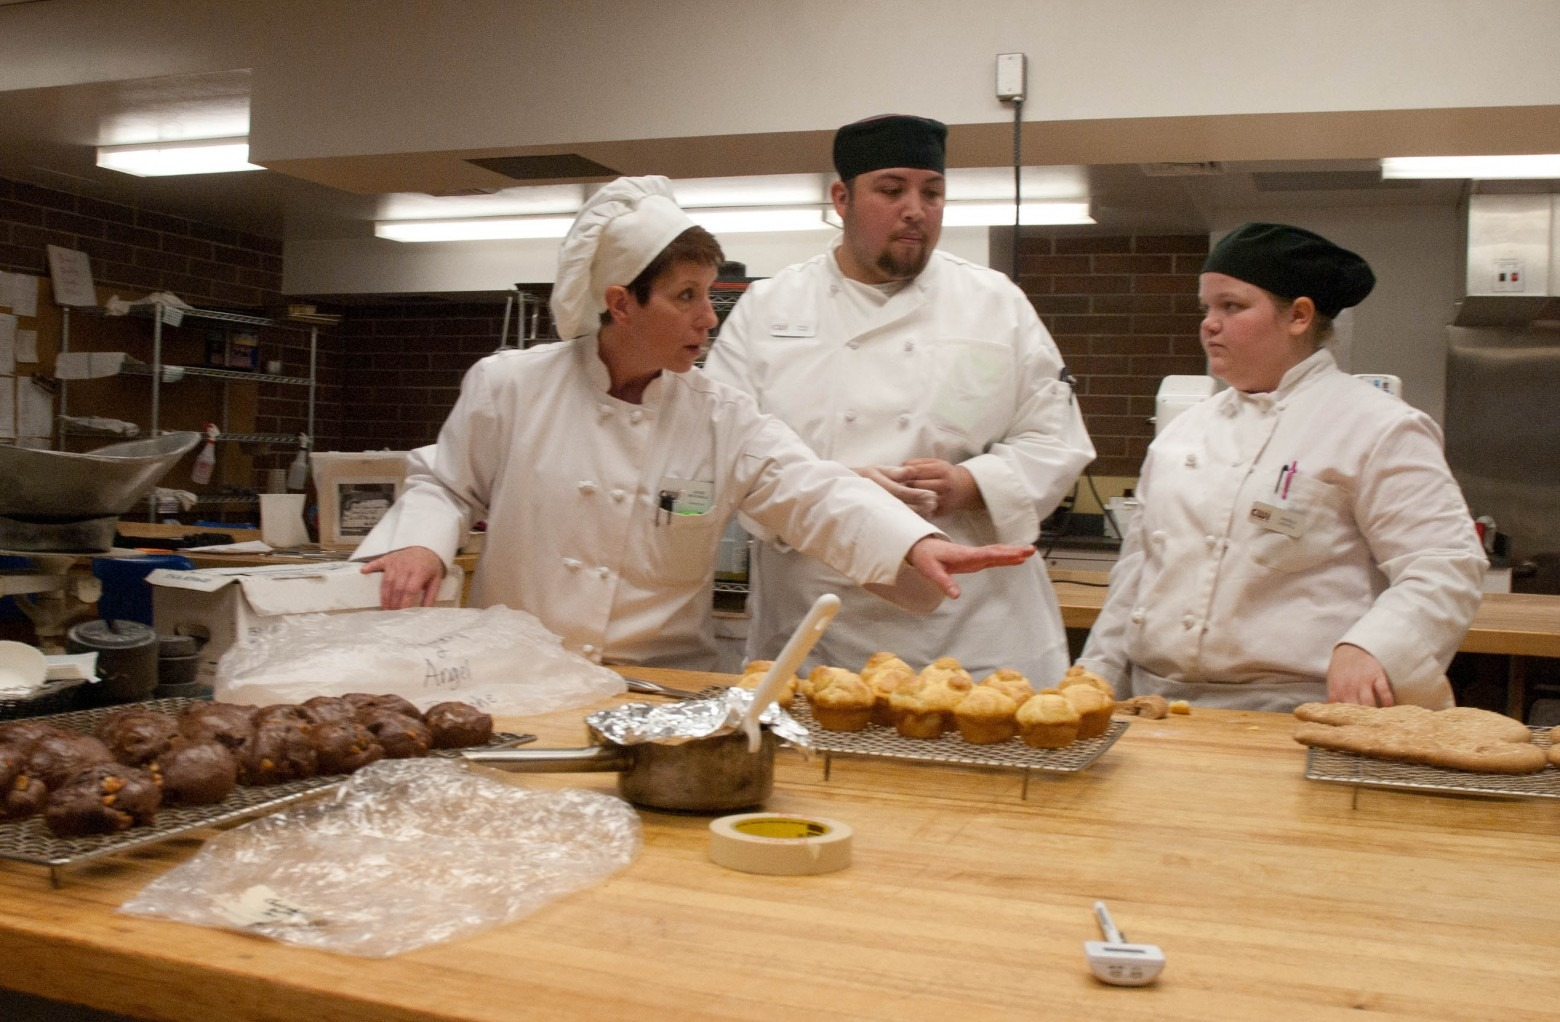 Baking And Pastry college now classes for high school students